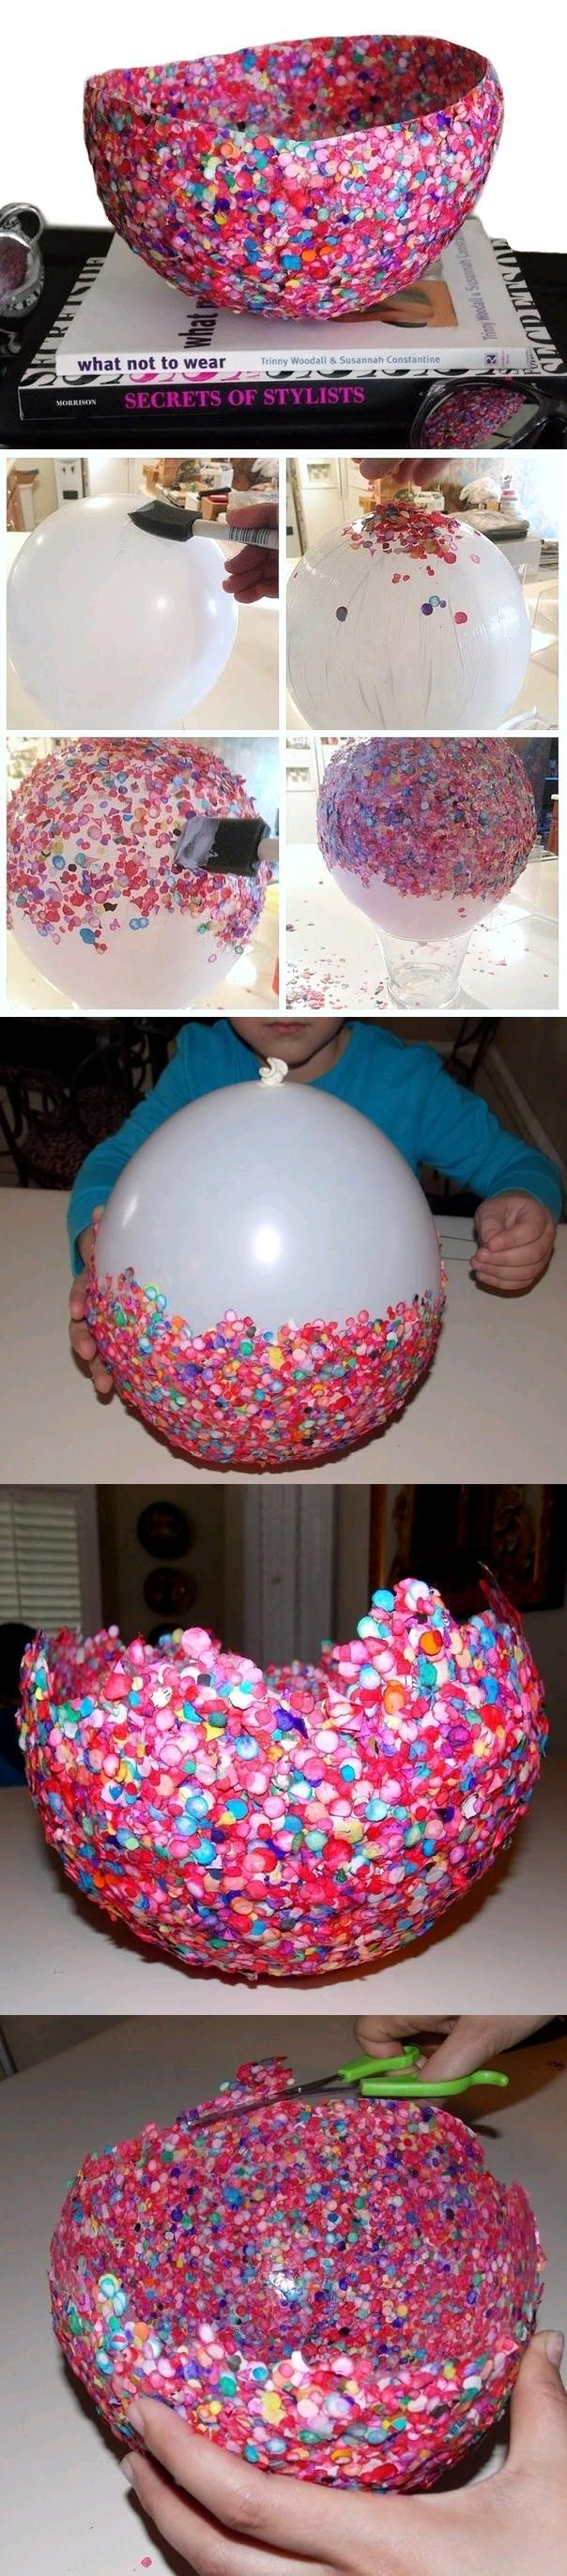 I did this I made a lamp shade and out a red feather boa around bottom and sold it to a salon》》》》DIY Confetti Vase. Cool idea for a birthday gift.  Cheap way to change color décor in teenager's room.  Big balloon could hold a small trashcan, small balloon...desk accessories, I can think of many ways, even brown paper bag for a faux leather lamp shade!!